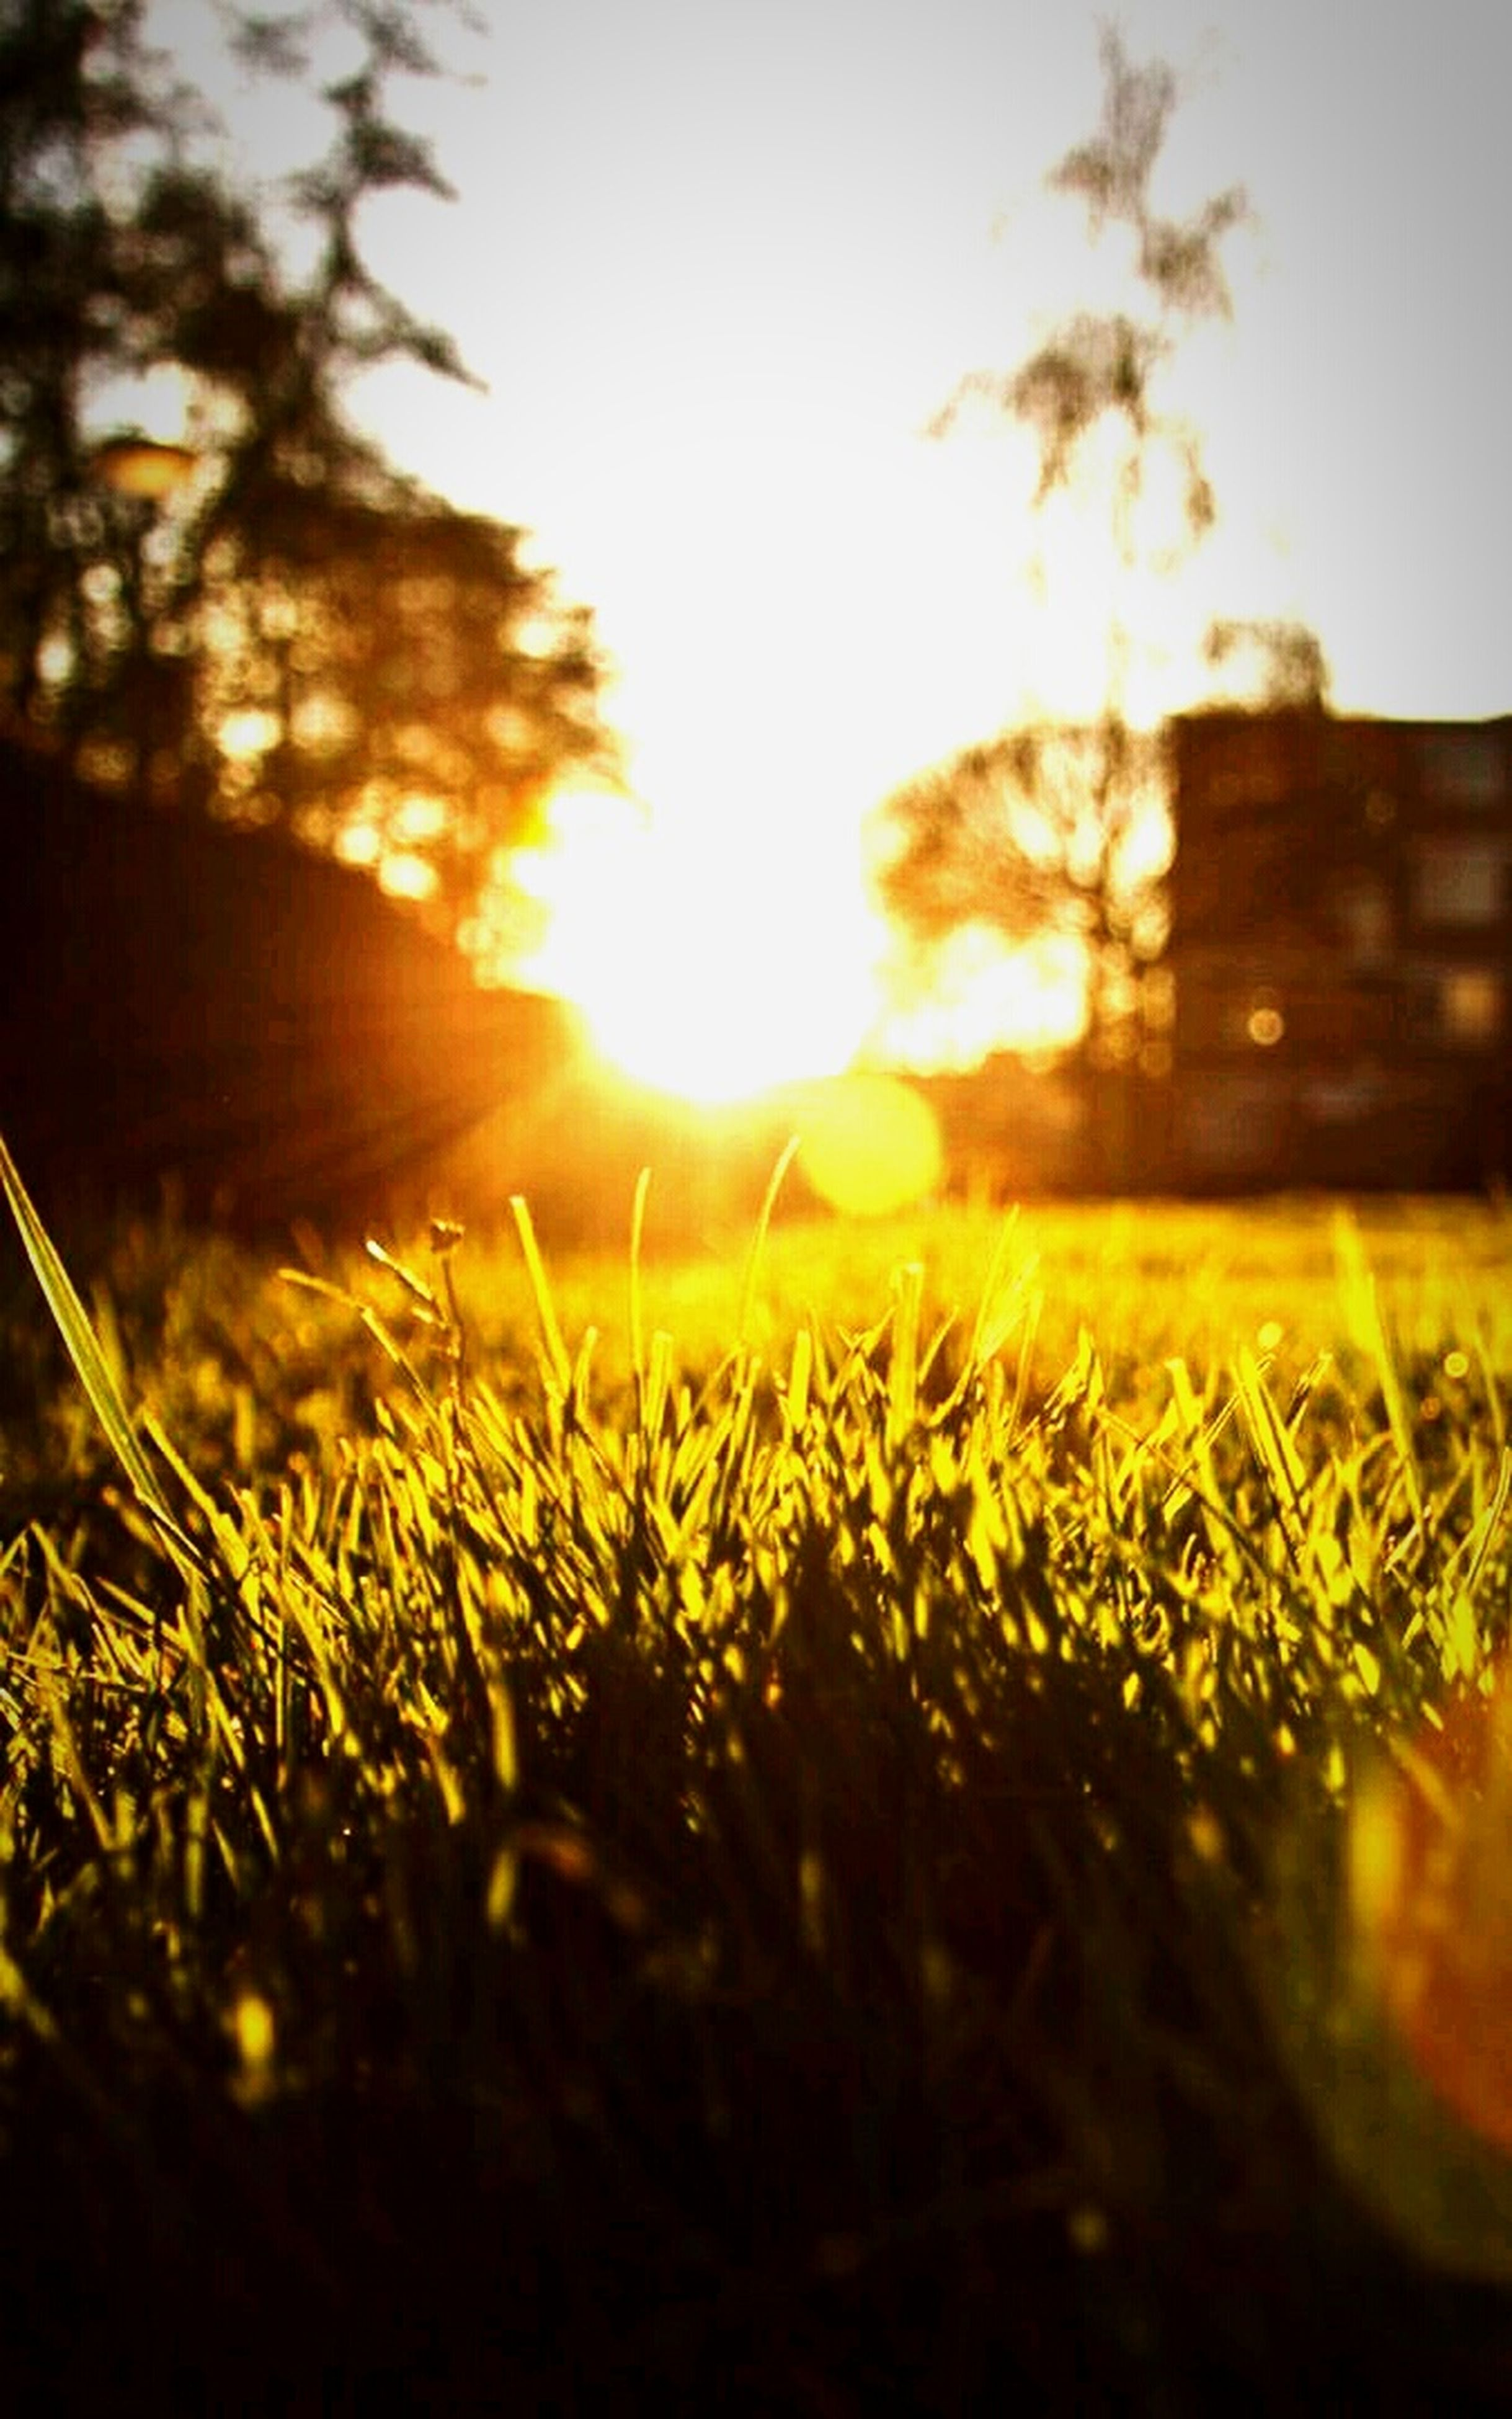 grass, sun, field, sunlight, lens flare, sunset, sunbeam, selective focus, surface level, grassy, growth, nature, tranquility, landscape, plant, focus on foreground, outdoors, tranquil scene, no people, green color